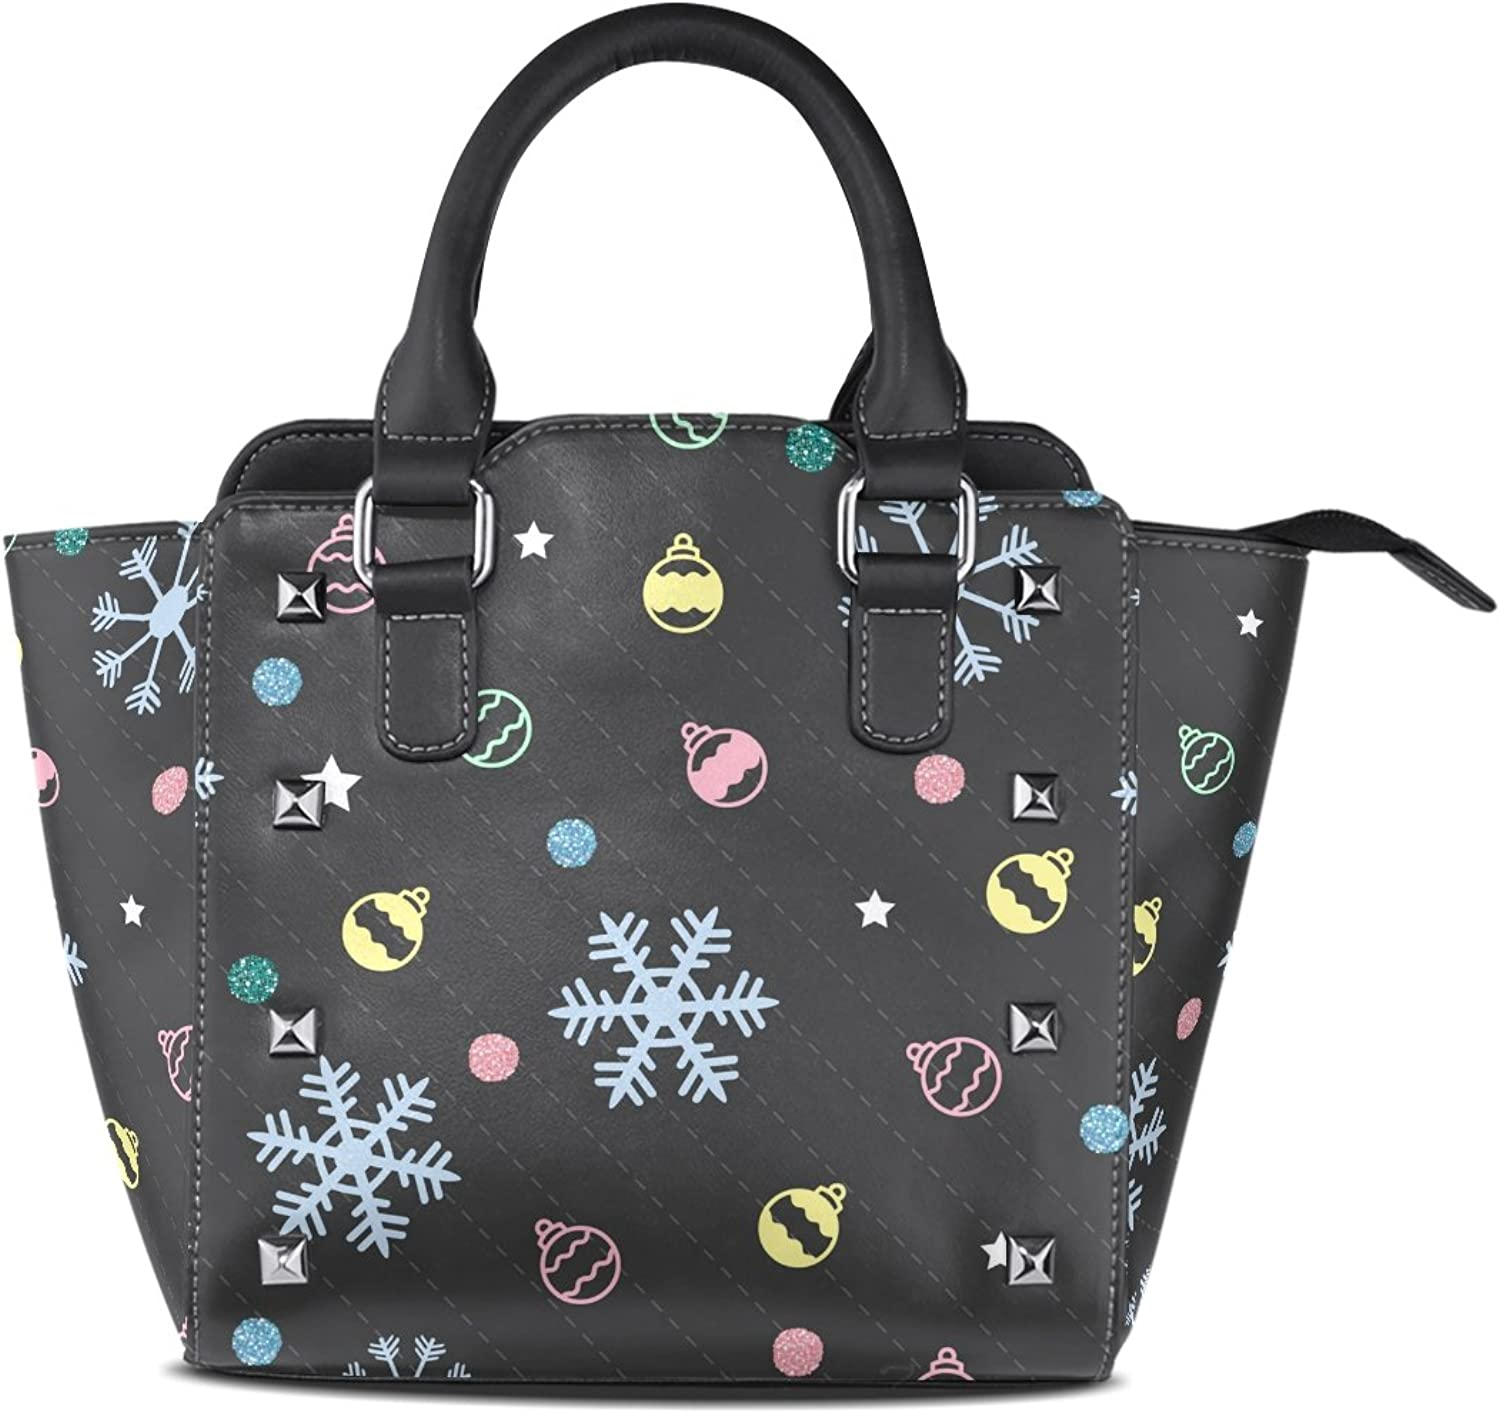 My Little Nest Women's Top Handle Satchel Handbag colorful Christmas Snow Star Ball and Dots Ladies PU Leather Shoulder Bag Crossbody Bag